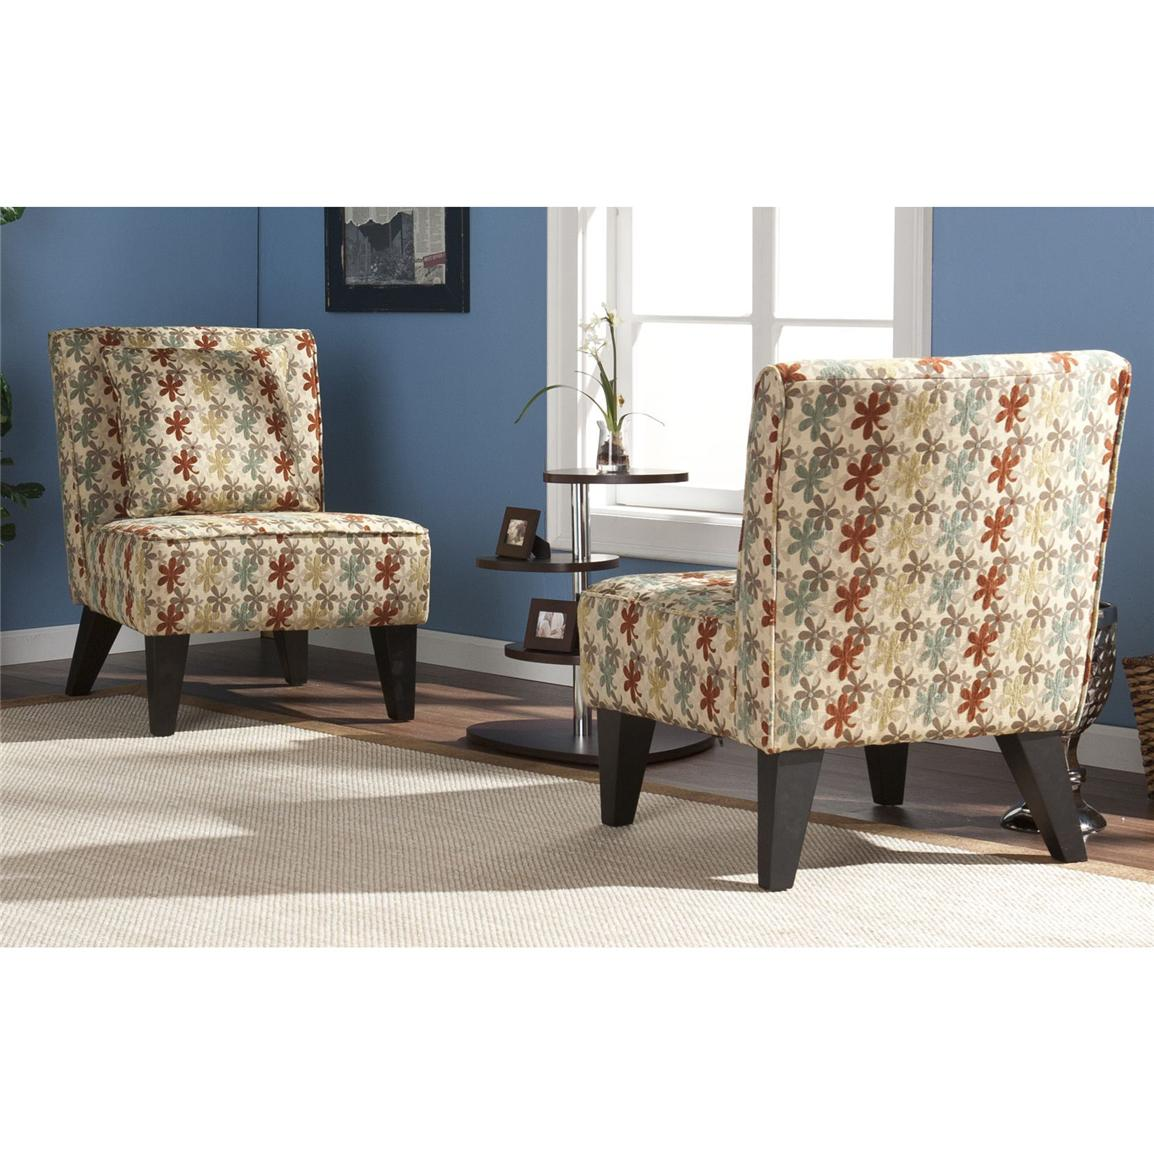 Holly & Martin™ Chappell Hill Chairs / Pillows - Clover Aegean